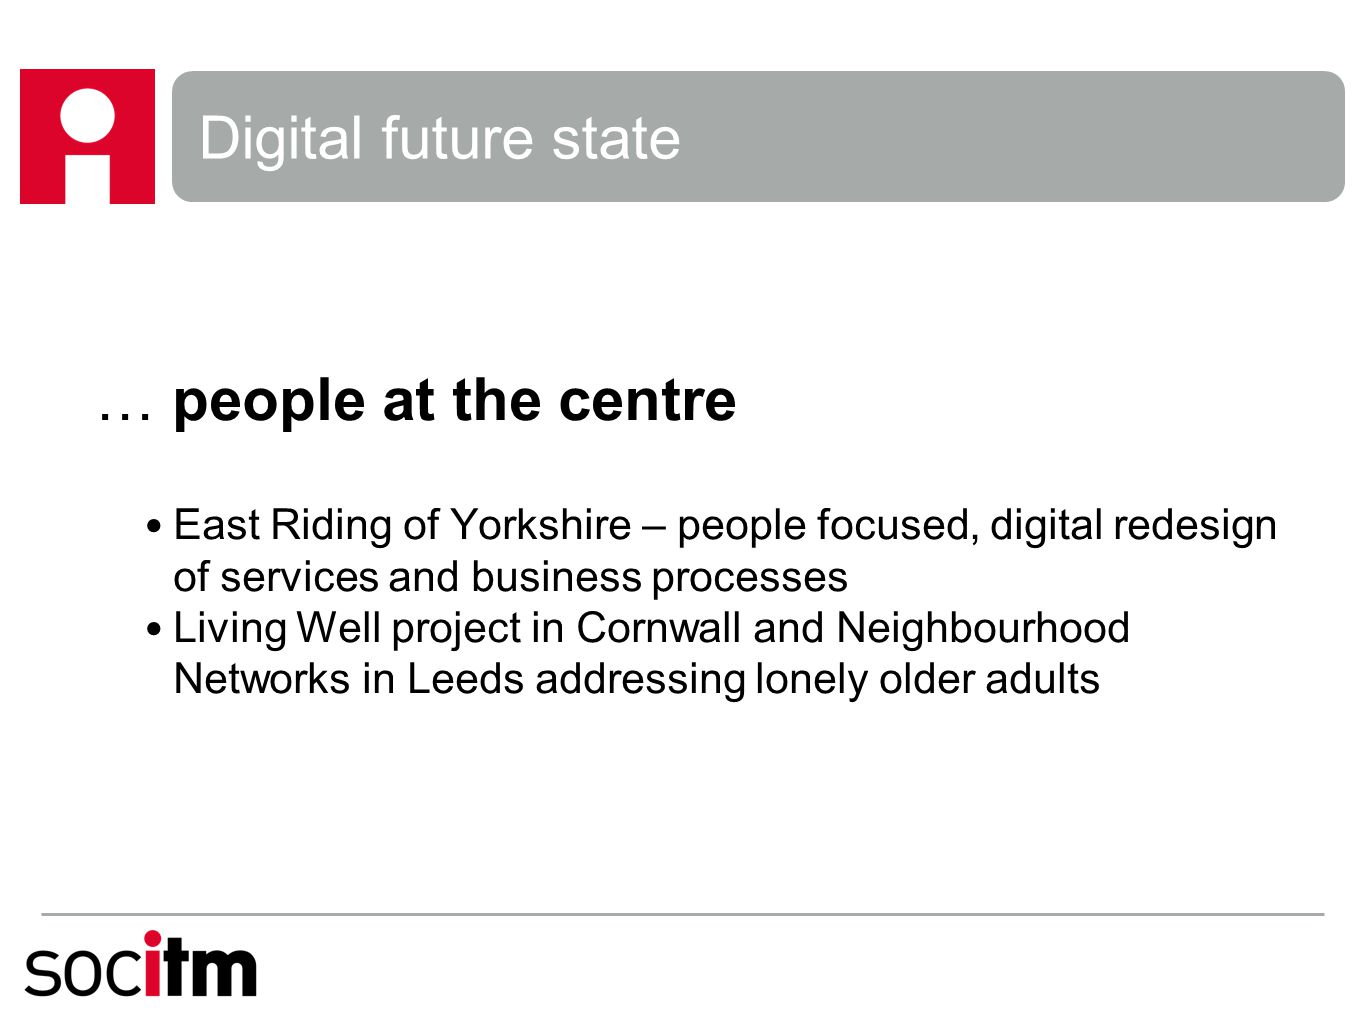 Digital future state … people at the centre East Riding of Yorkshire – people focused, digital redesign of services and business processes Living Well project in Cornwall and Neighbourhood Networks in Leeds addressing lonely older adults